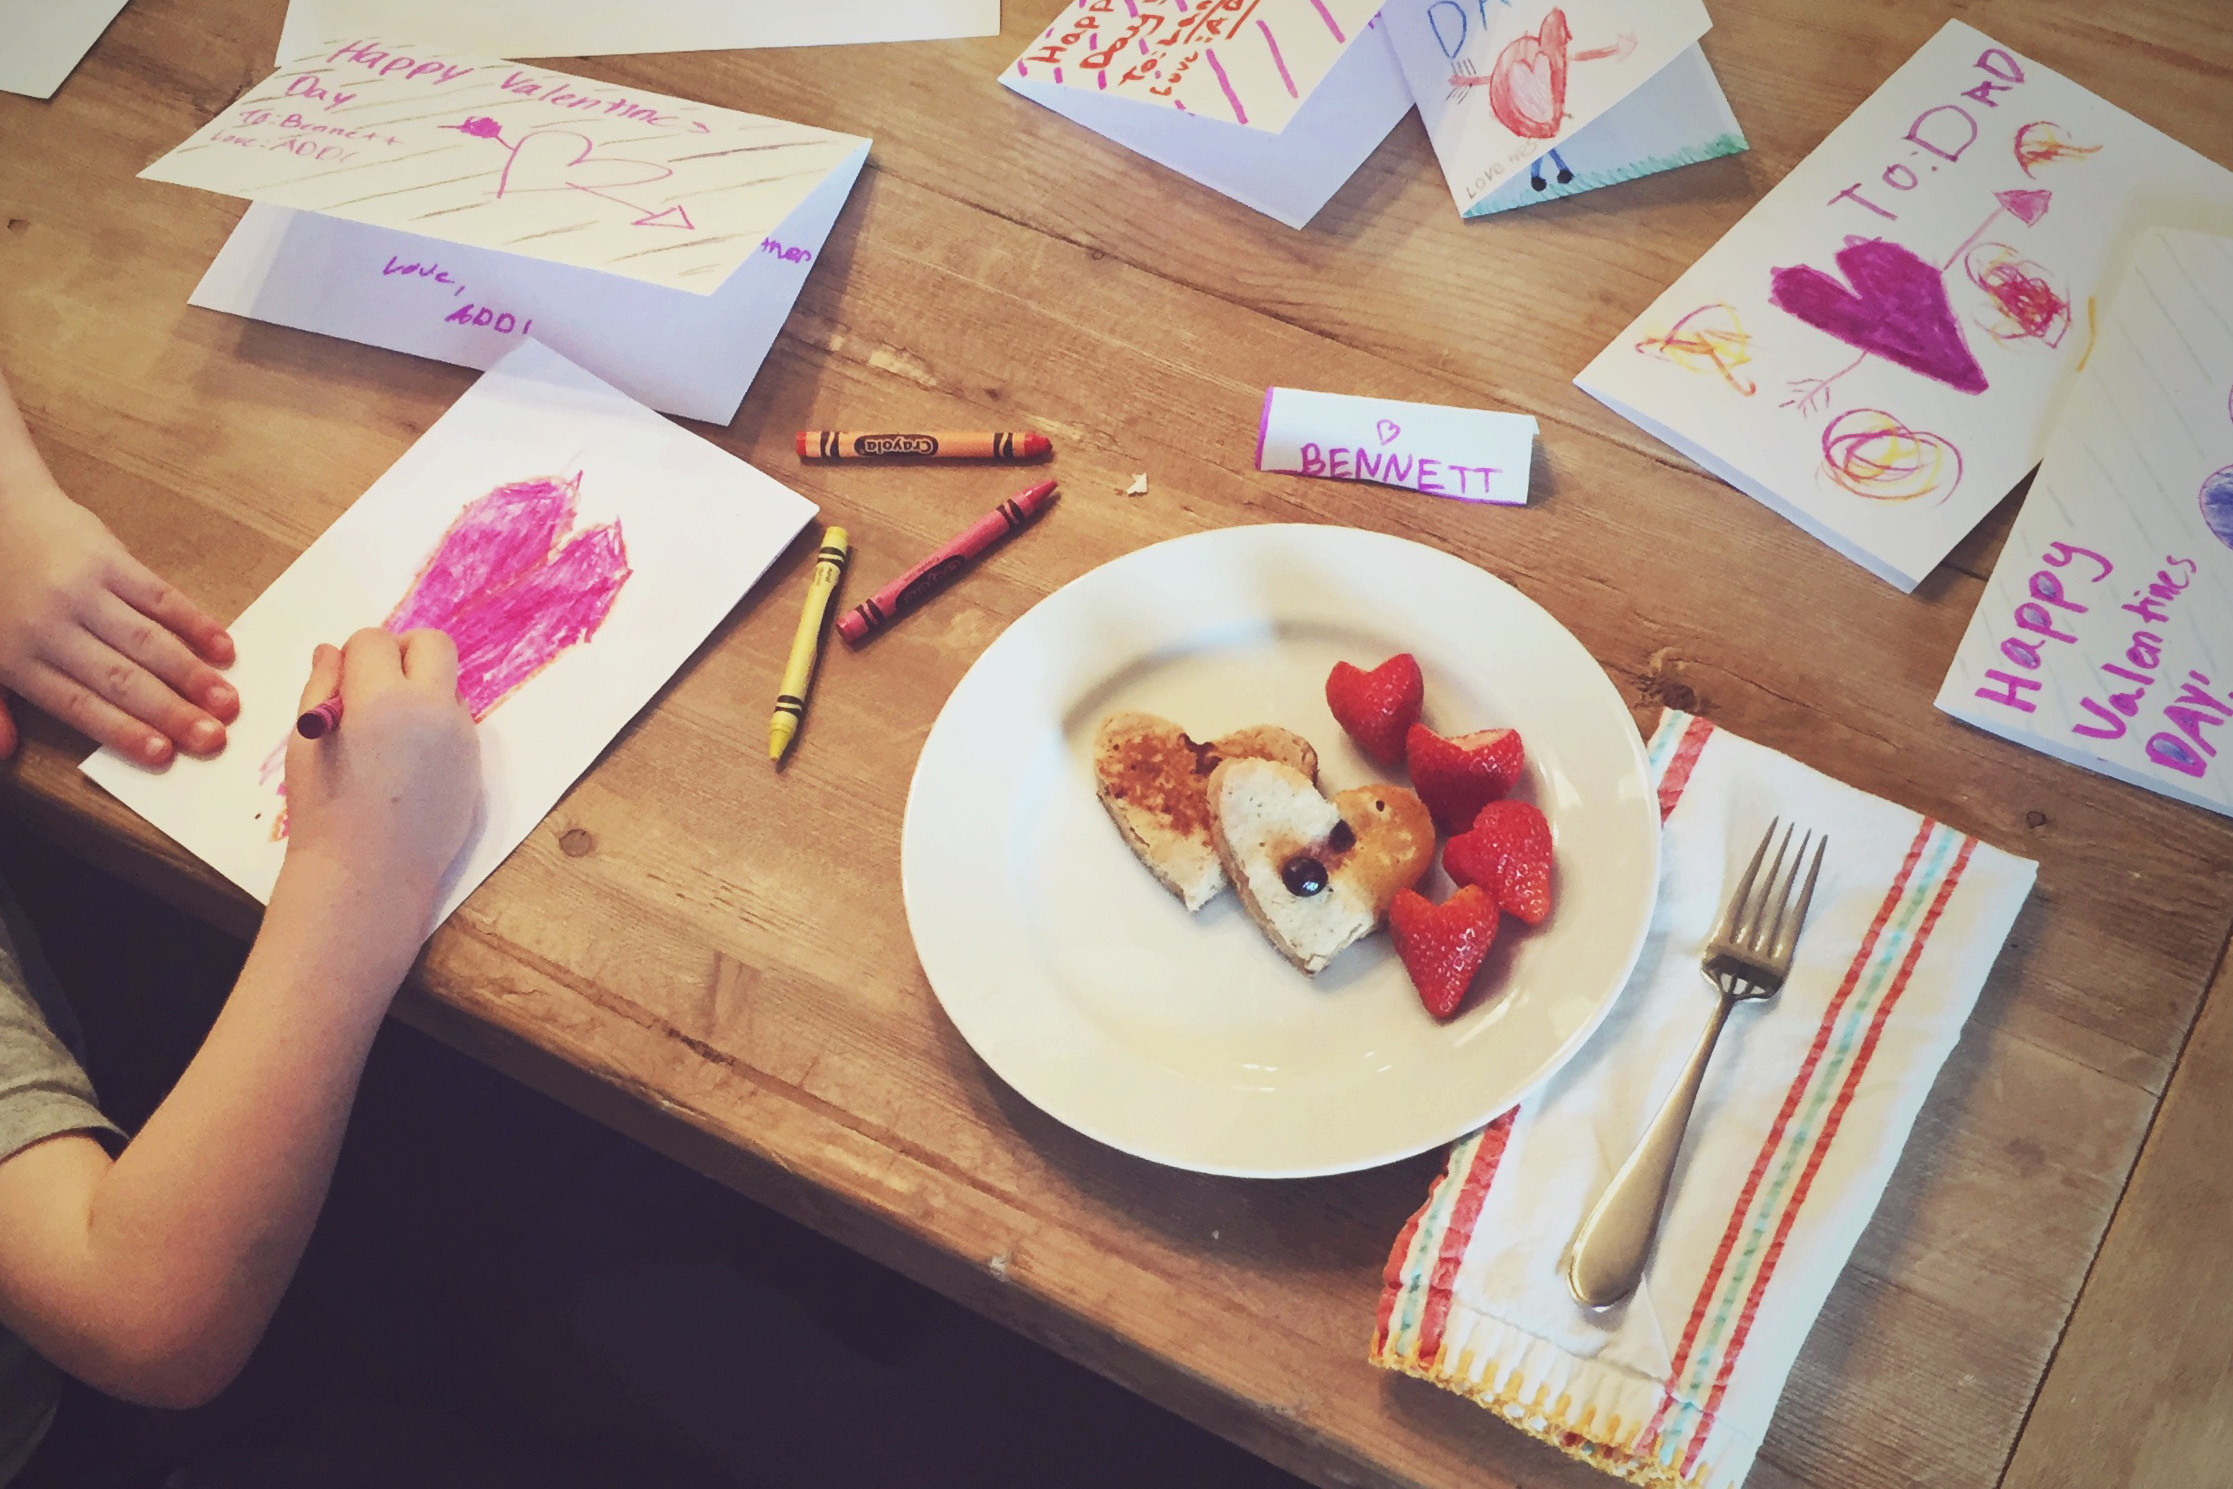 Valentines day inspirations - lovely Matters blog - heather walker